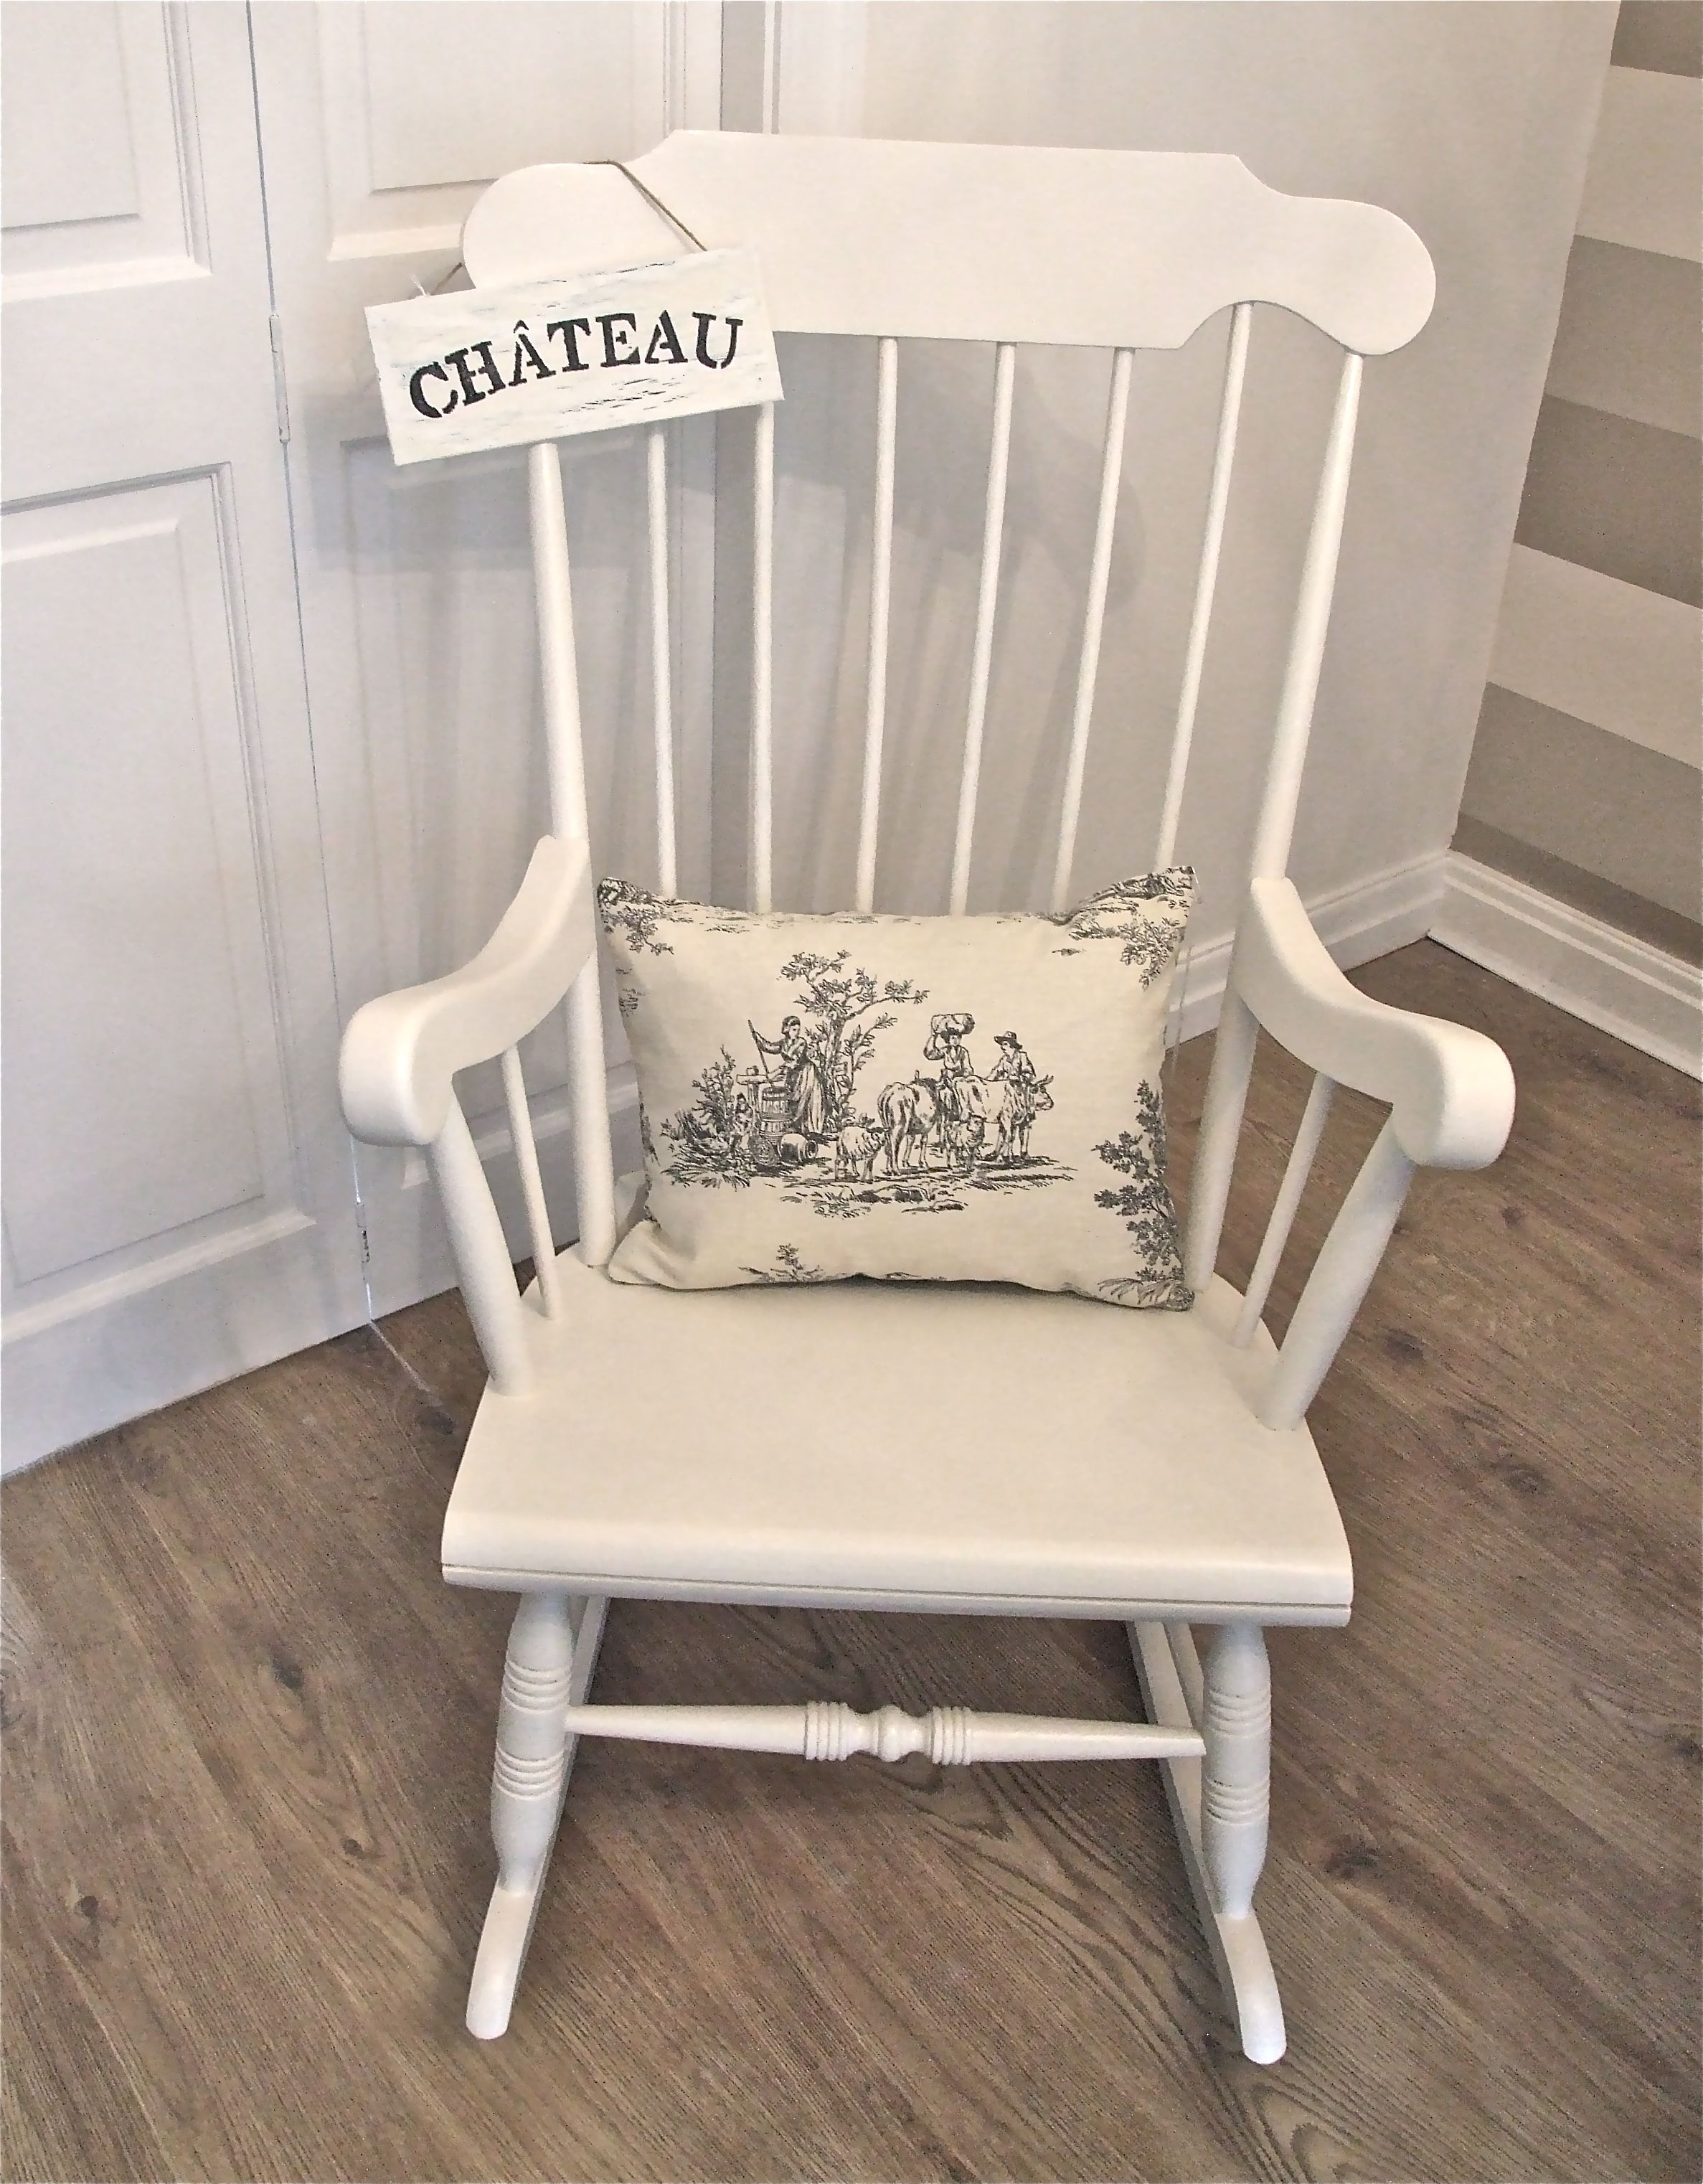 Phenomenal Vintage Rocking Chair By Little France Boutique Furniture Interior Design Ideas Inamawefileorg